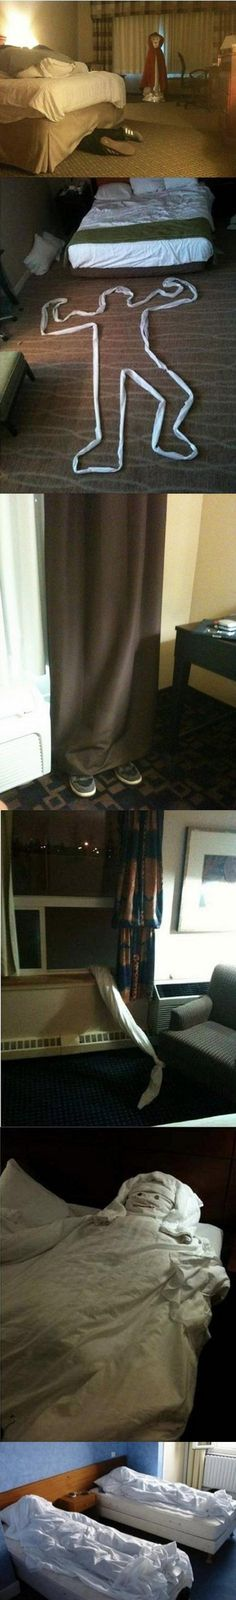 Hotel Room Pranks to Leave for the Maids. Hilarious but terrible.